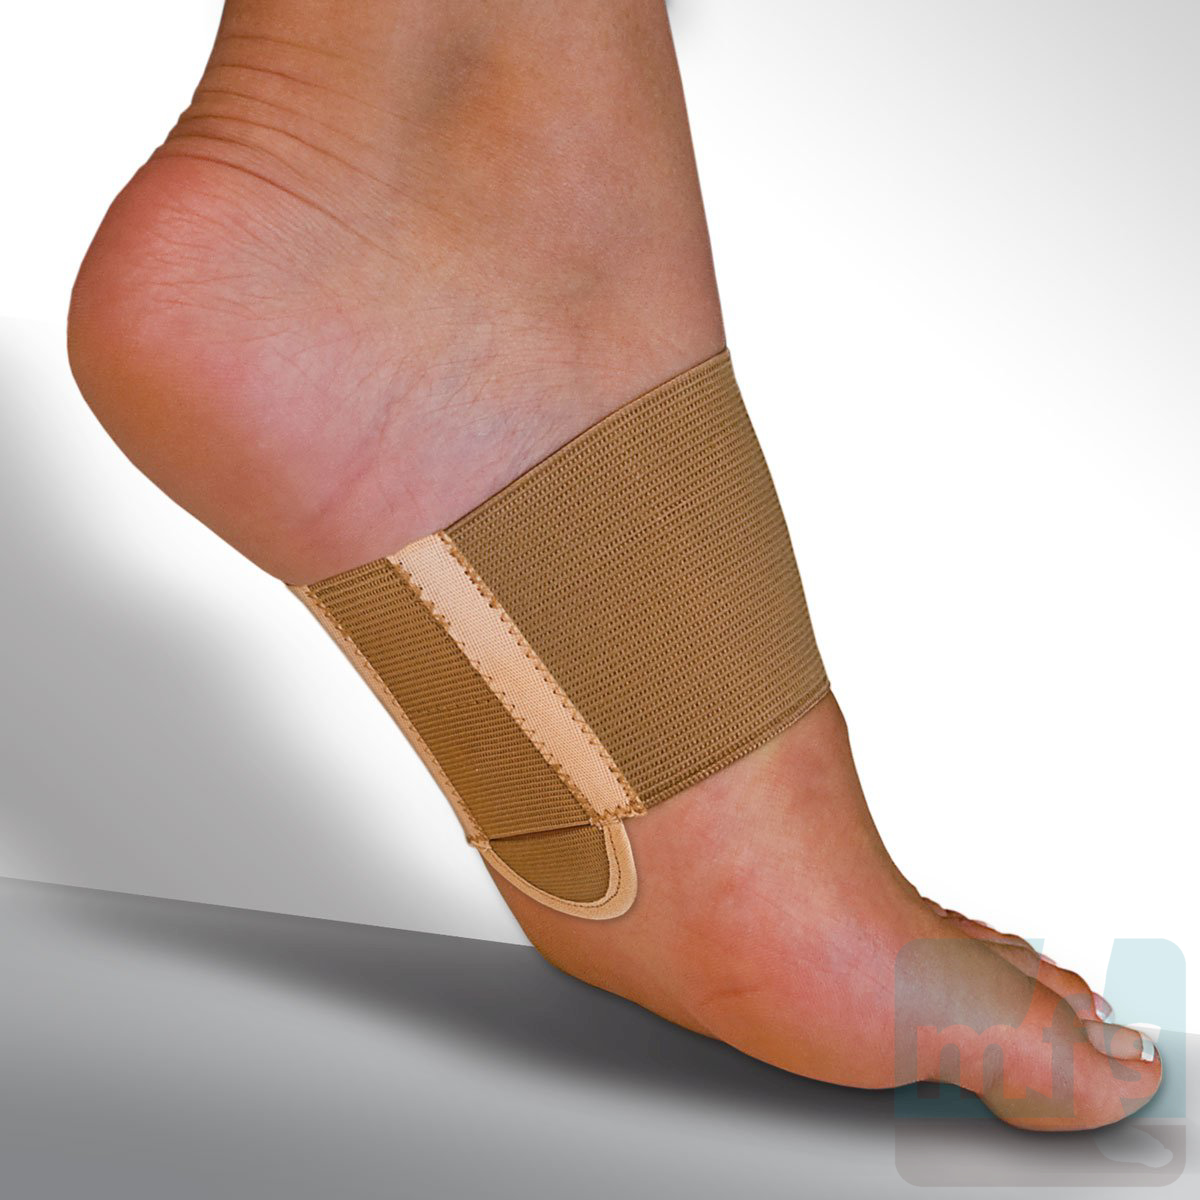 Metatarsal arch support pads